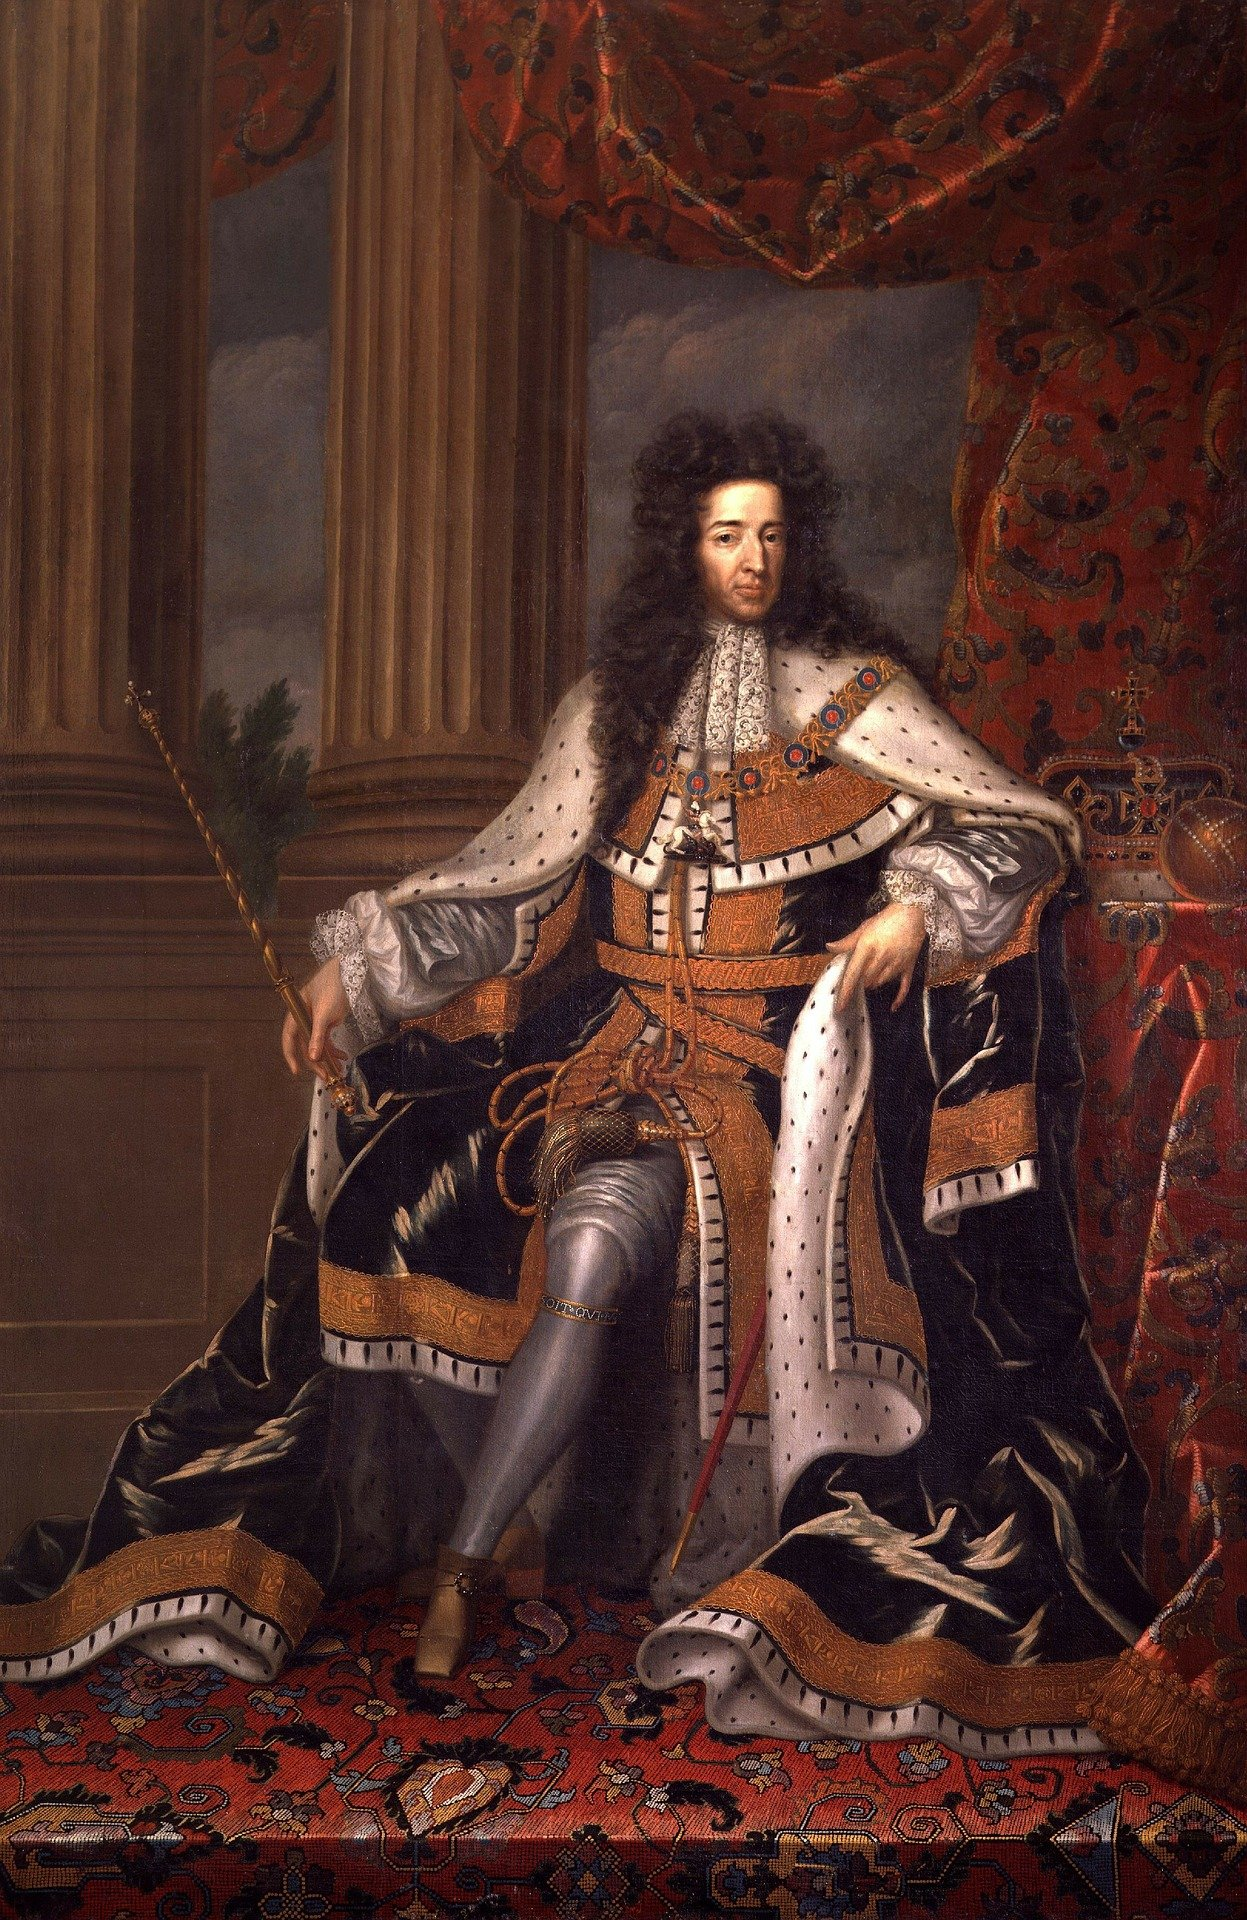 Pictured - A portrait of King William III in his robe | Source: Pexels